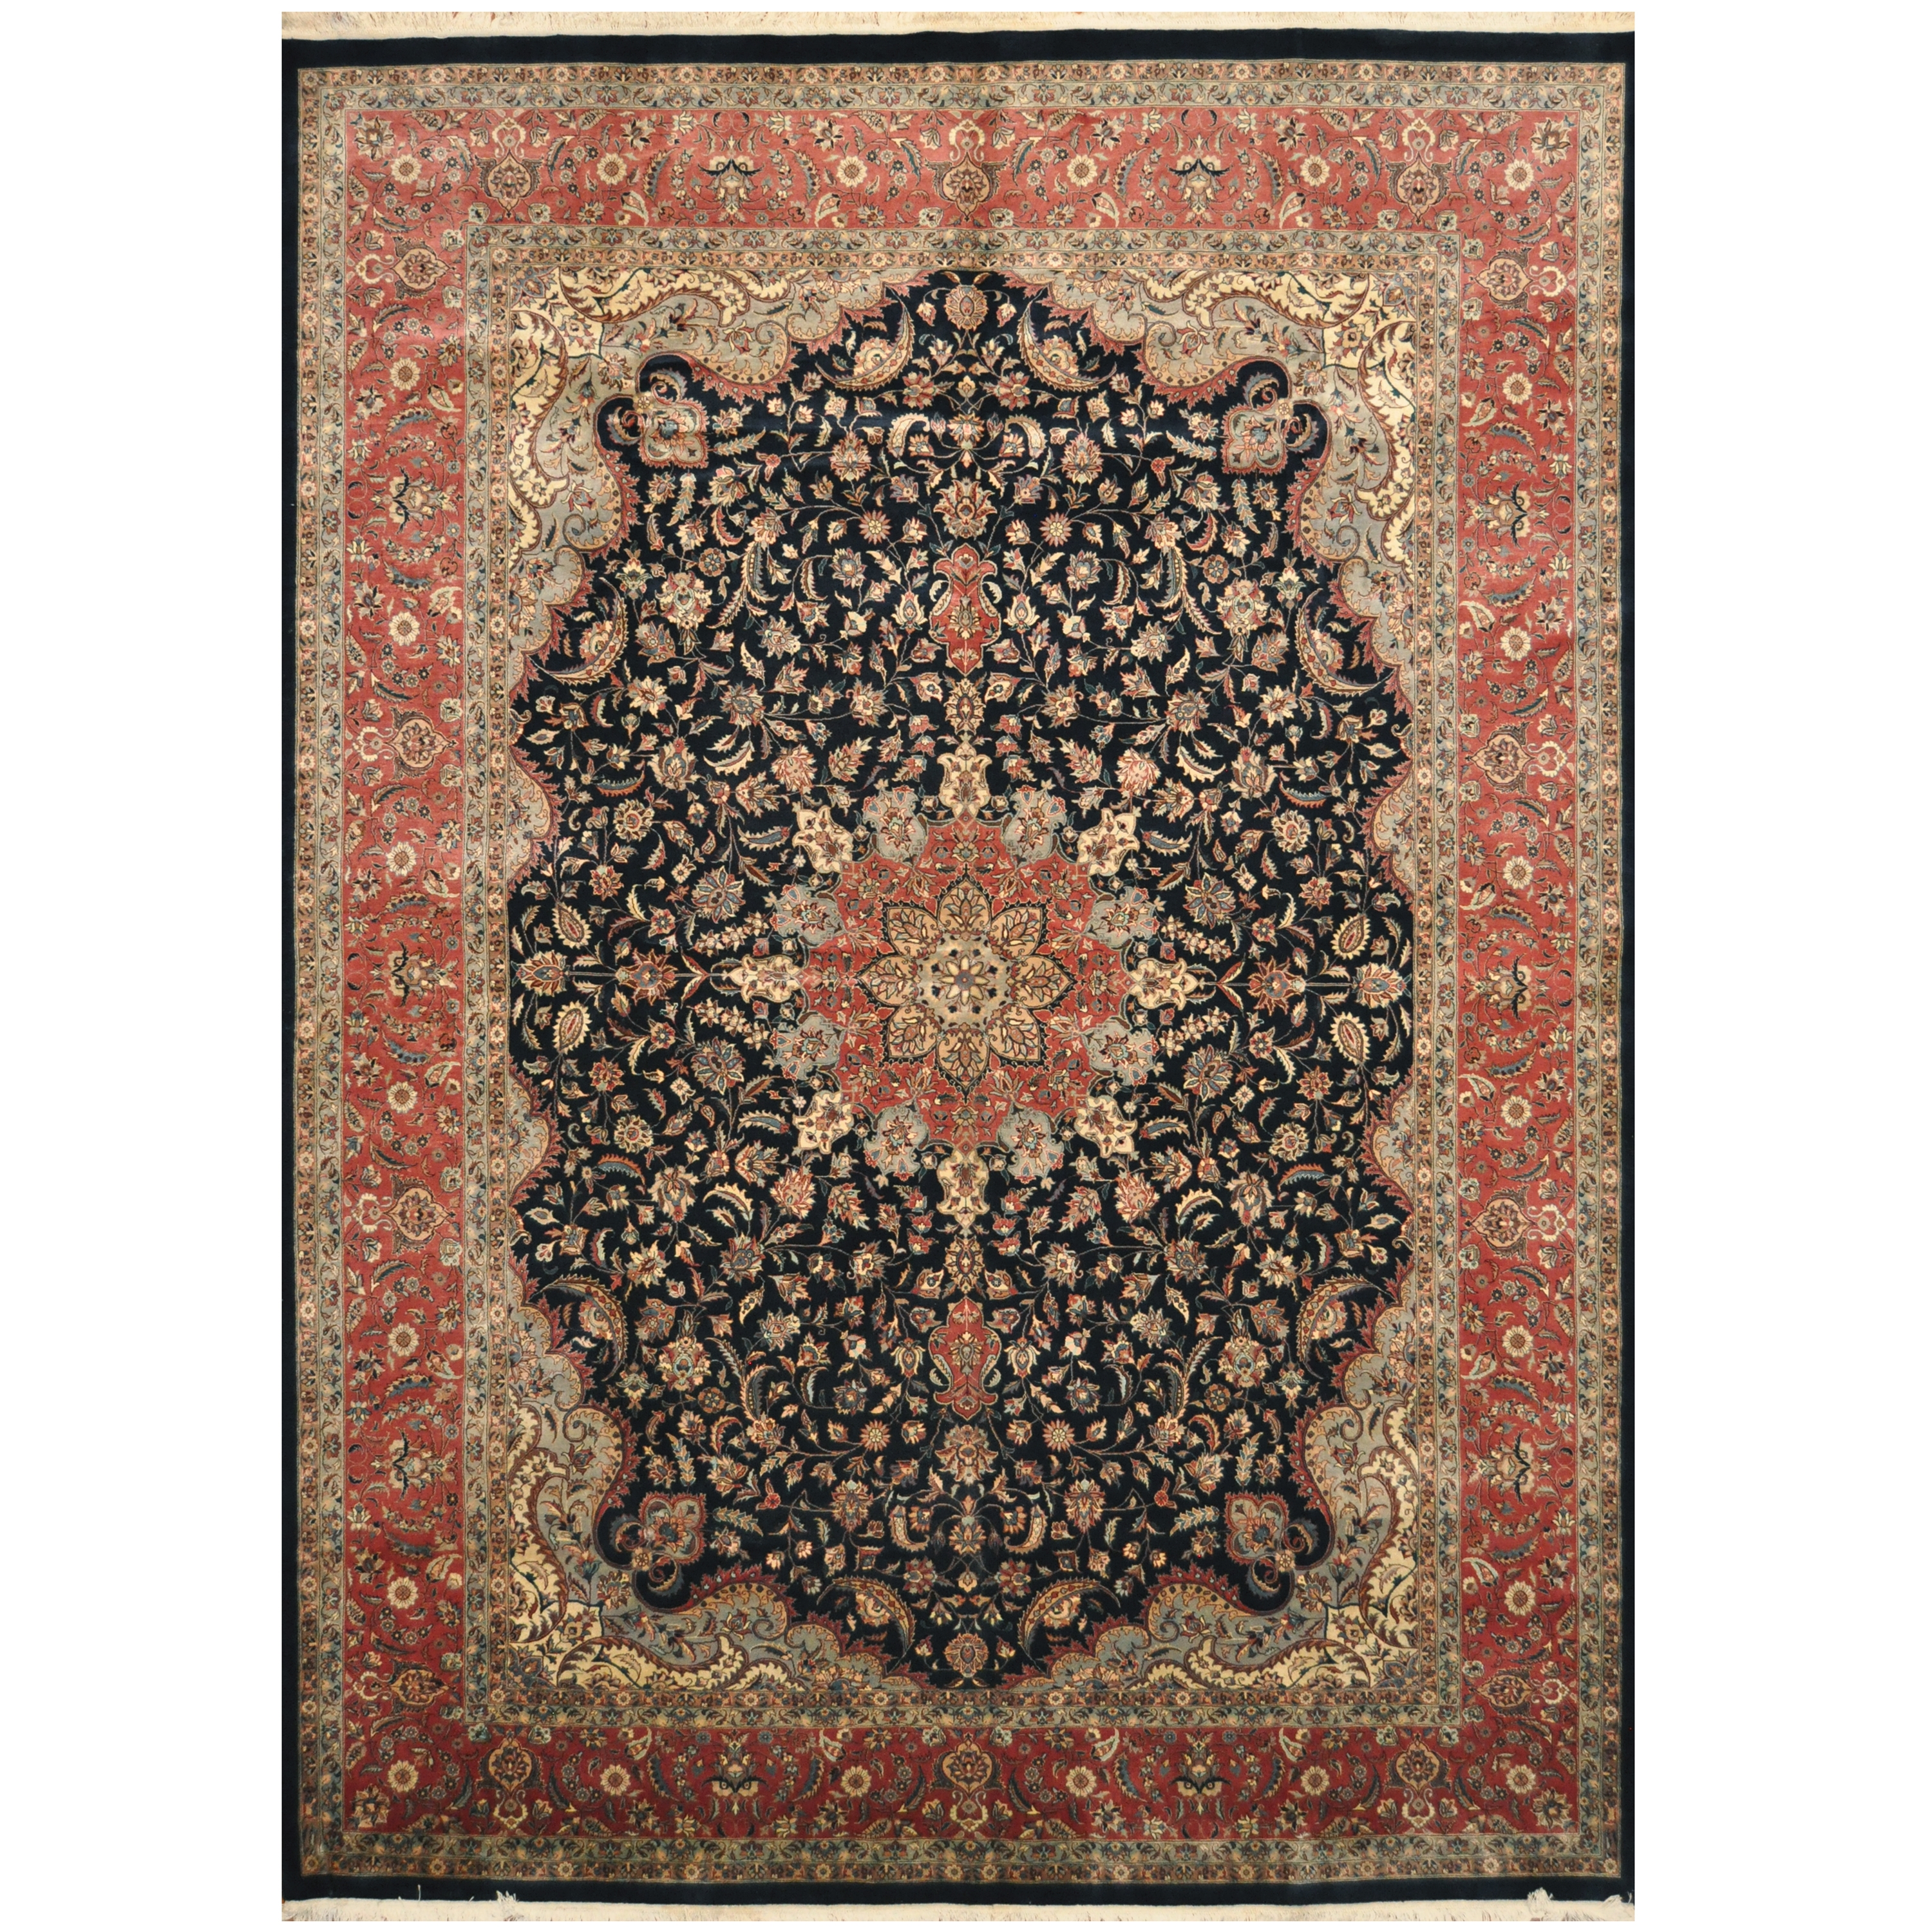 Stani Hand Knotted Kashan Wool Rug 10 X 14